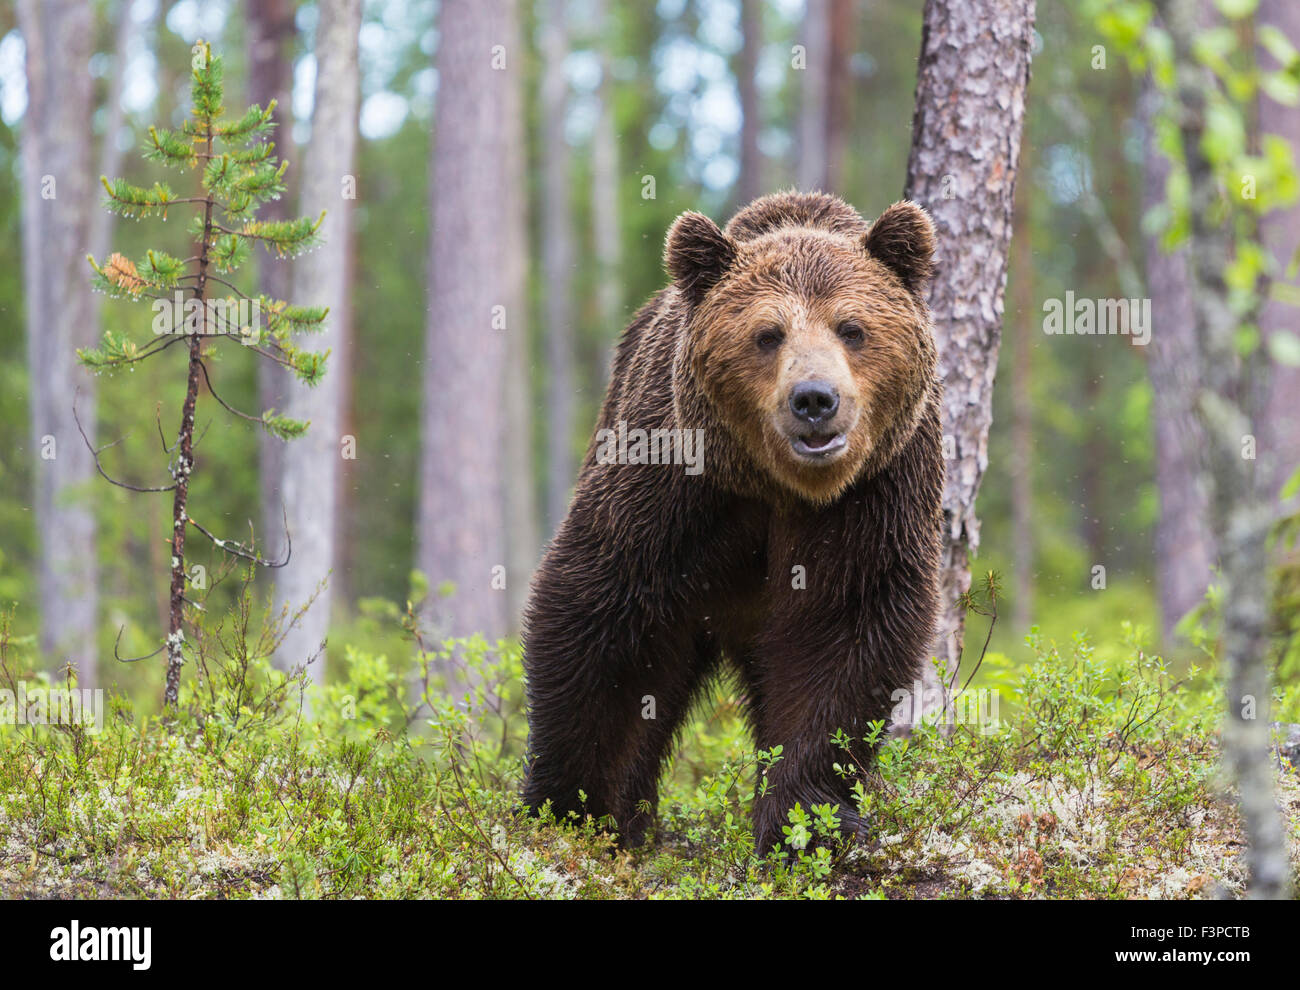 Close up photo of  Brown bear, Ursus arctos, walking in deep forest,looking in to camera, Kuhmo, Finland Stock Photo